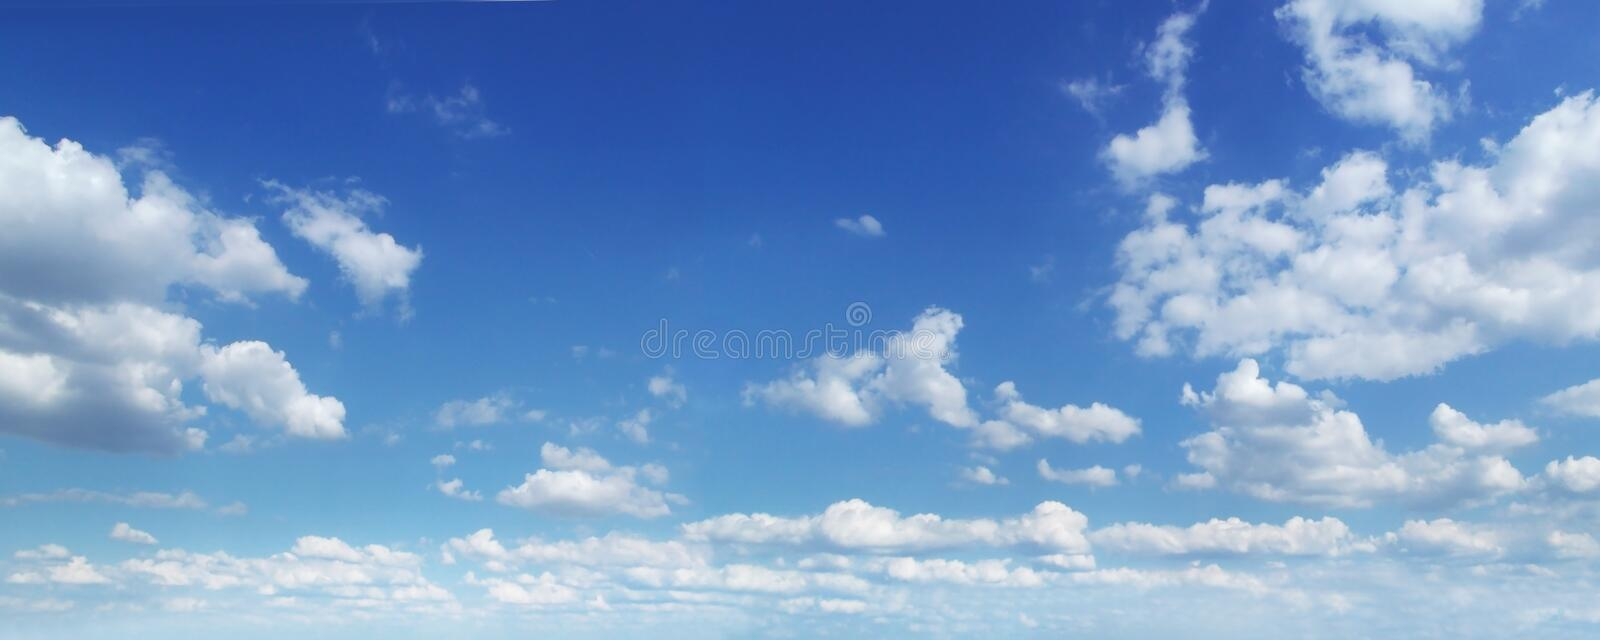 Download Cloudy sky panorama stock image. Image of clouds, daylight - 43048579